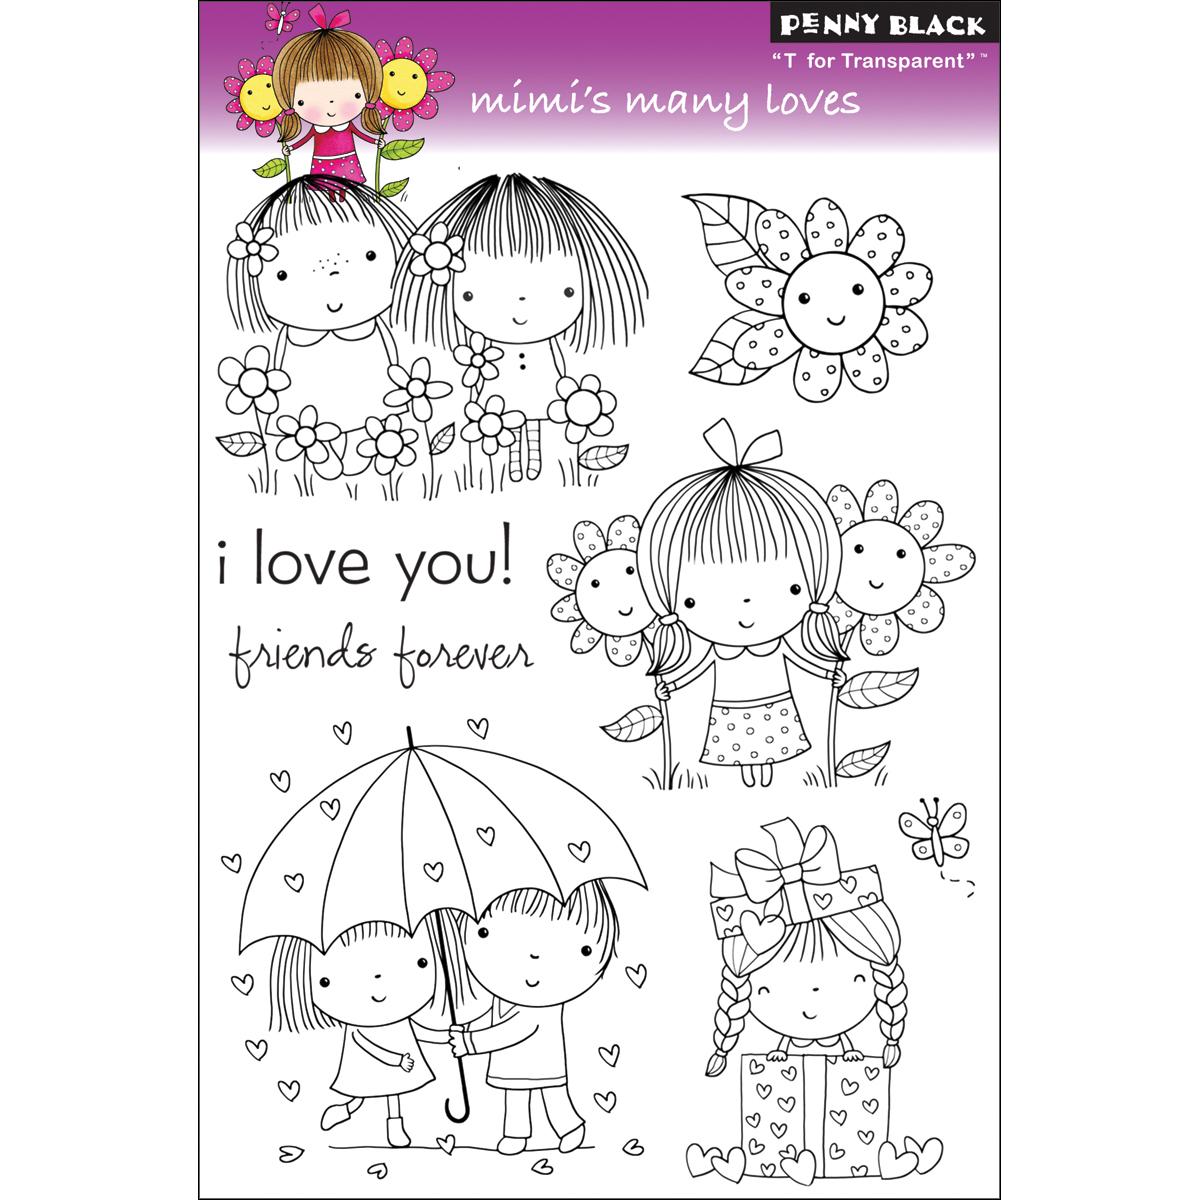 """Penny Black Clear Stamps 5"""" x 7.5"""" Sheet, Mimi's Many Loves"""